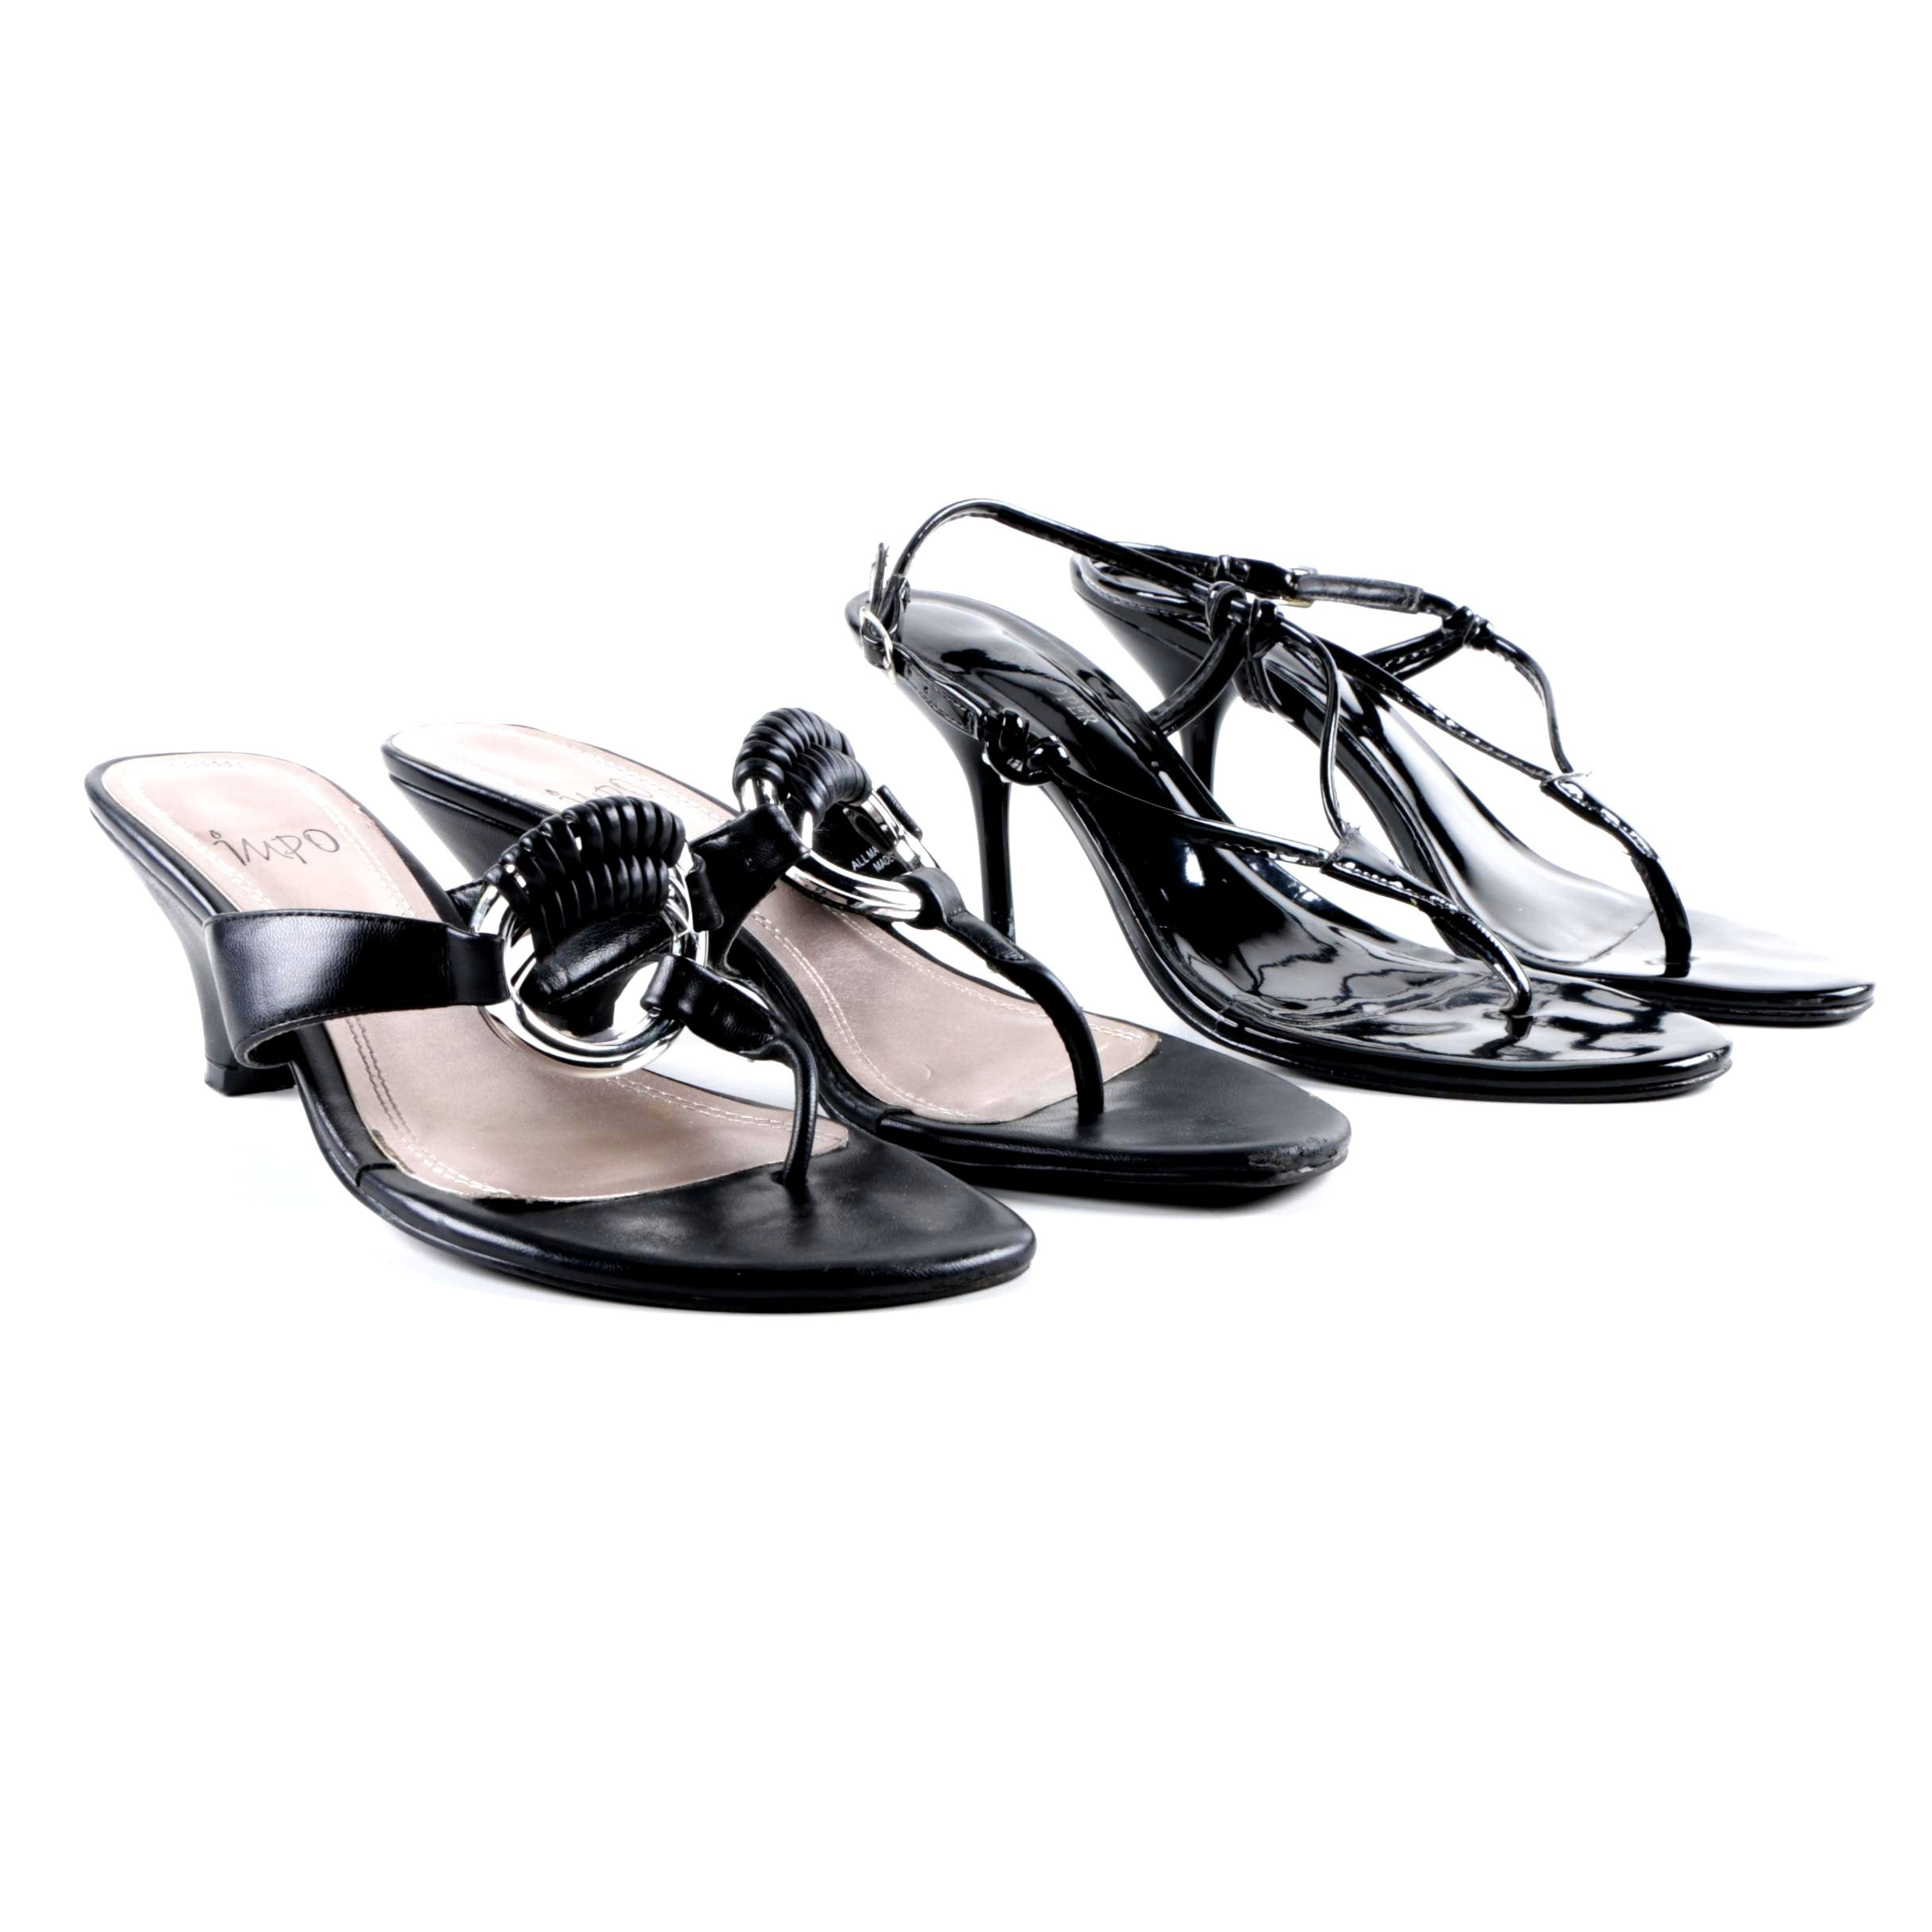 Women's Boston Proper and Impo Heeled Sandals